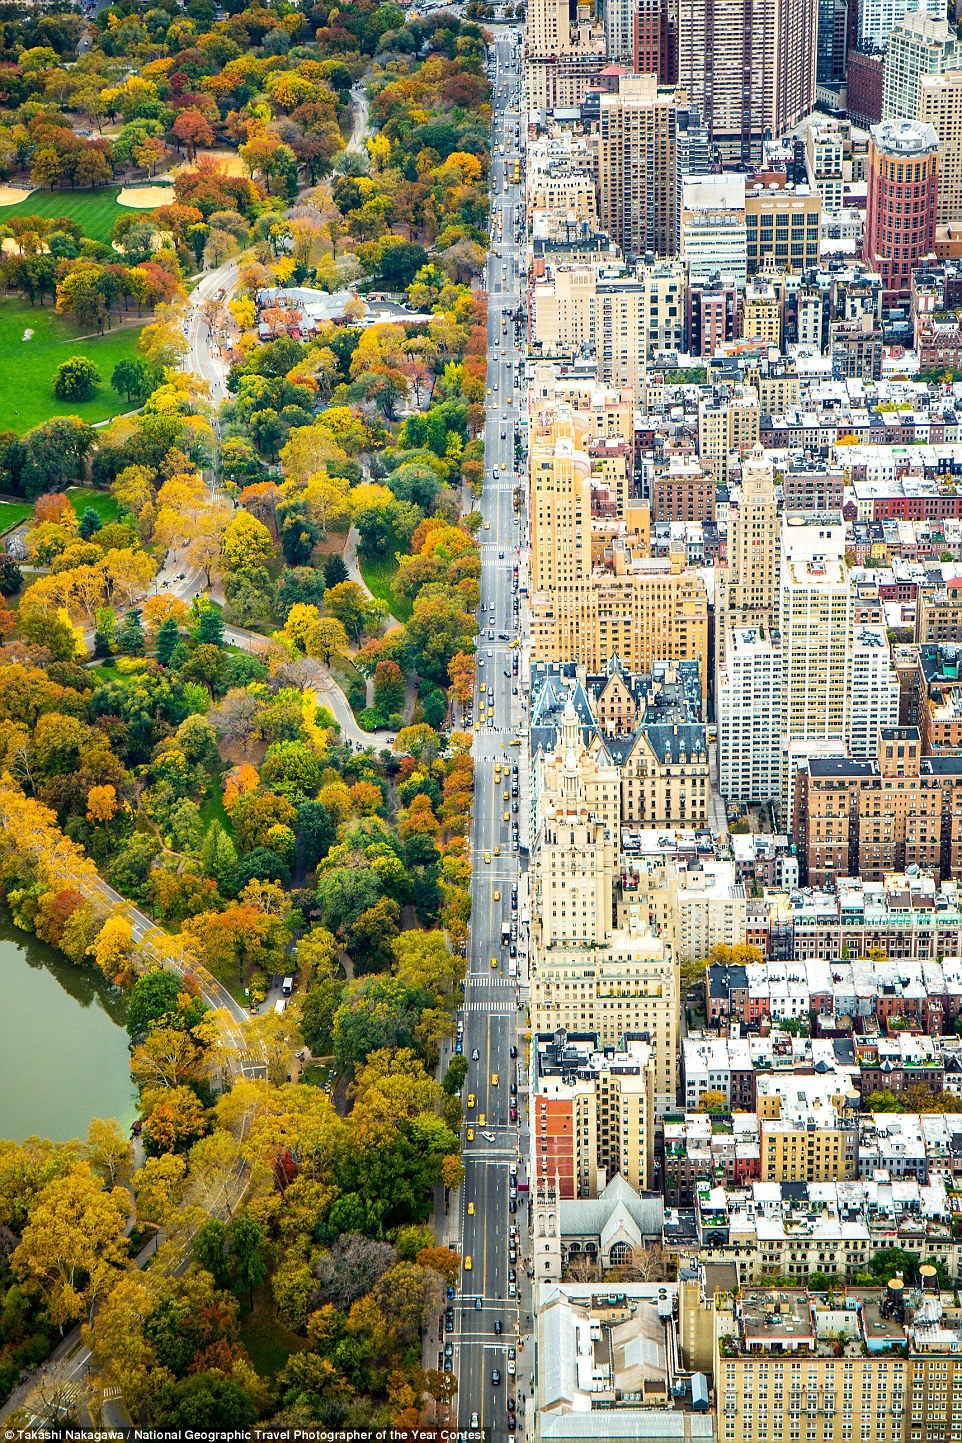 Divide by Kathleen Dolmatch, who said: 'In the helicopter looking south on Central Park West - dividing the architecture and Central park, on November 5th, 2014, a day before my 27th birthday. The flight was my birthday gift'